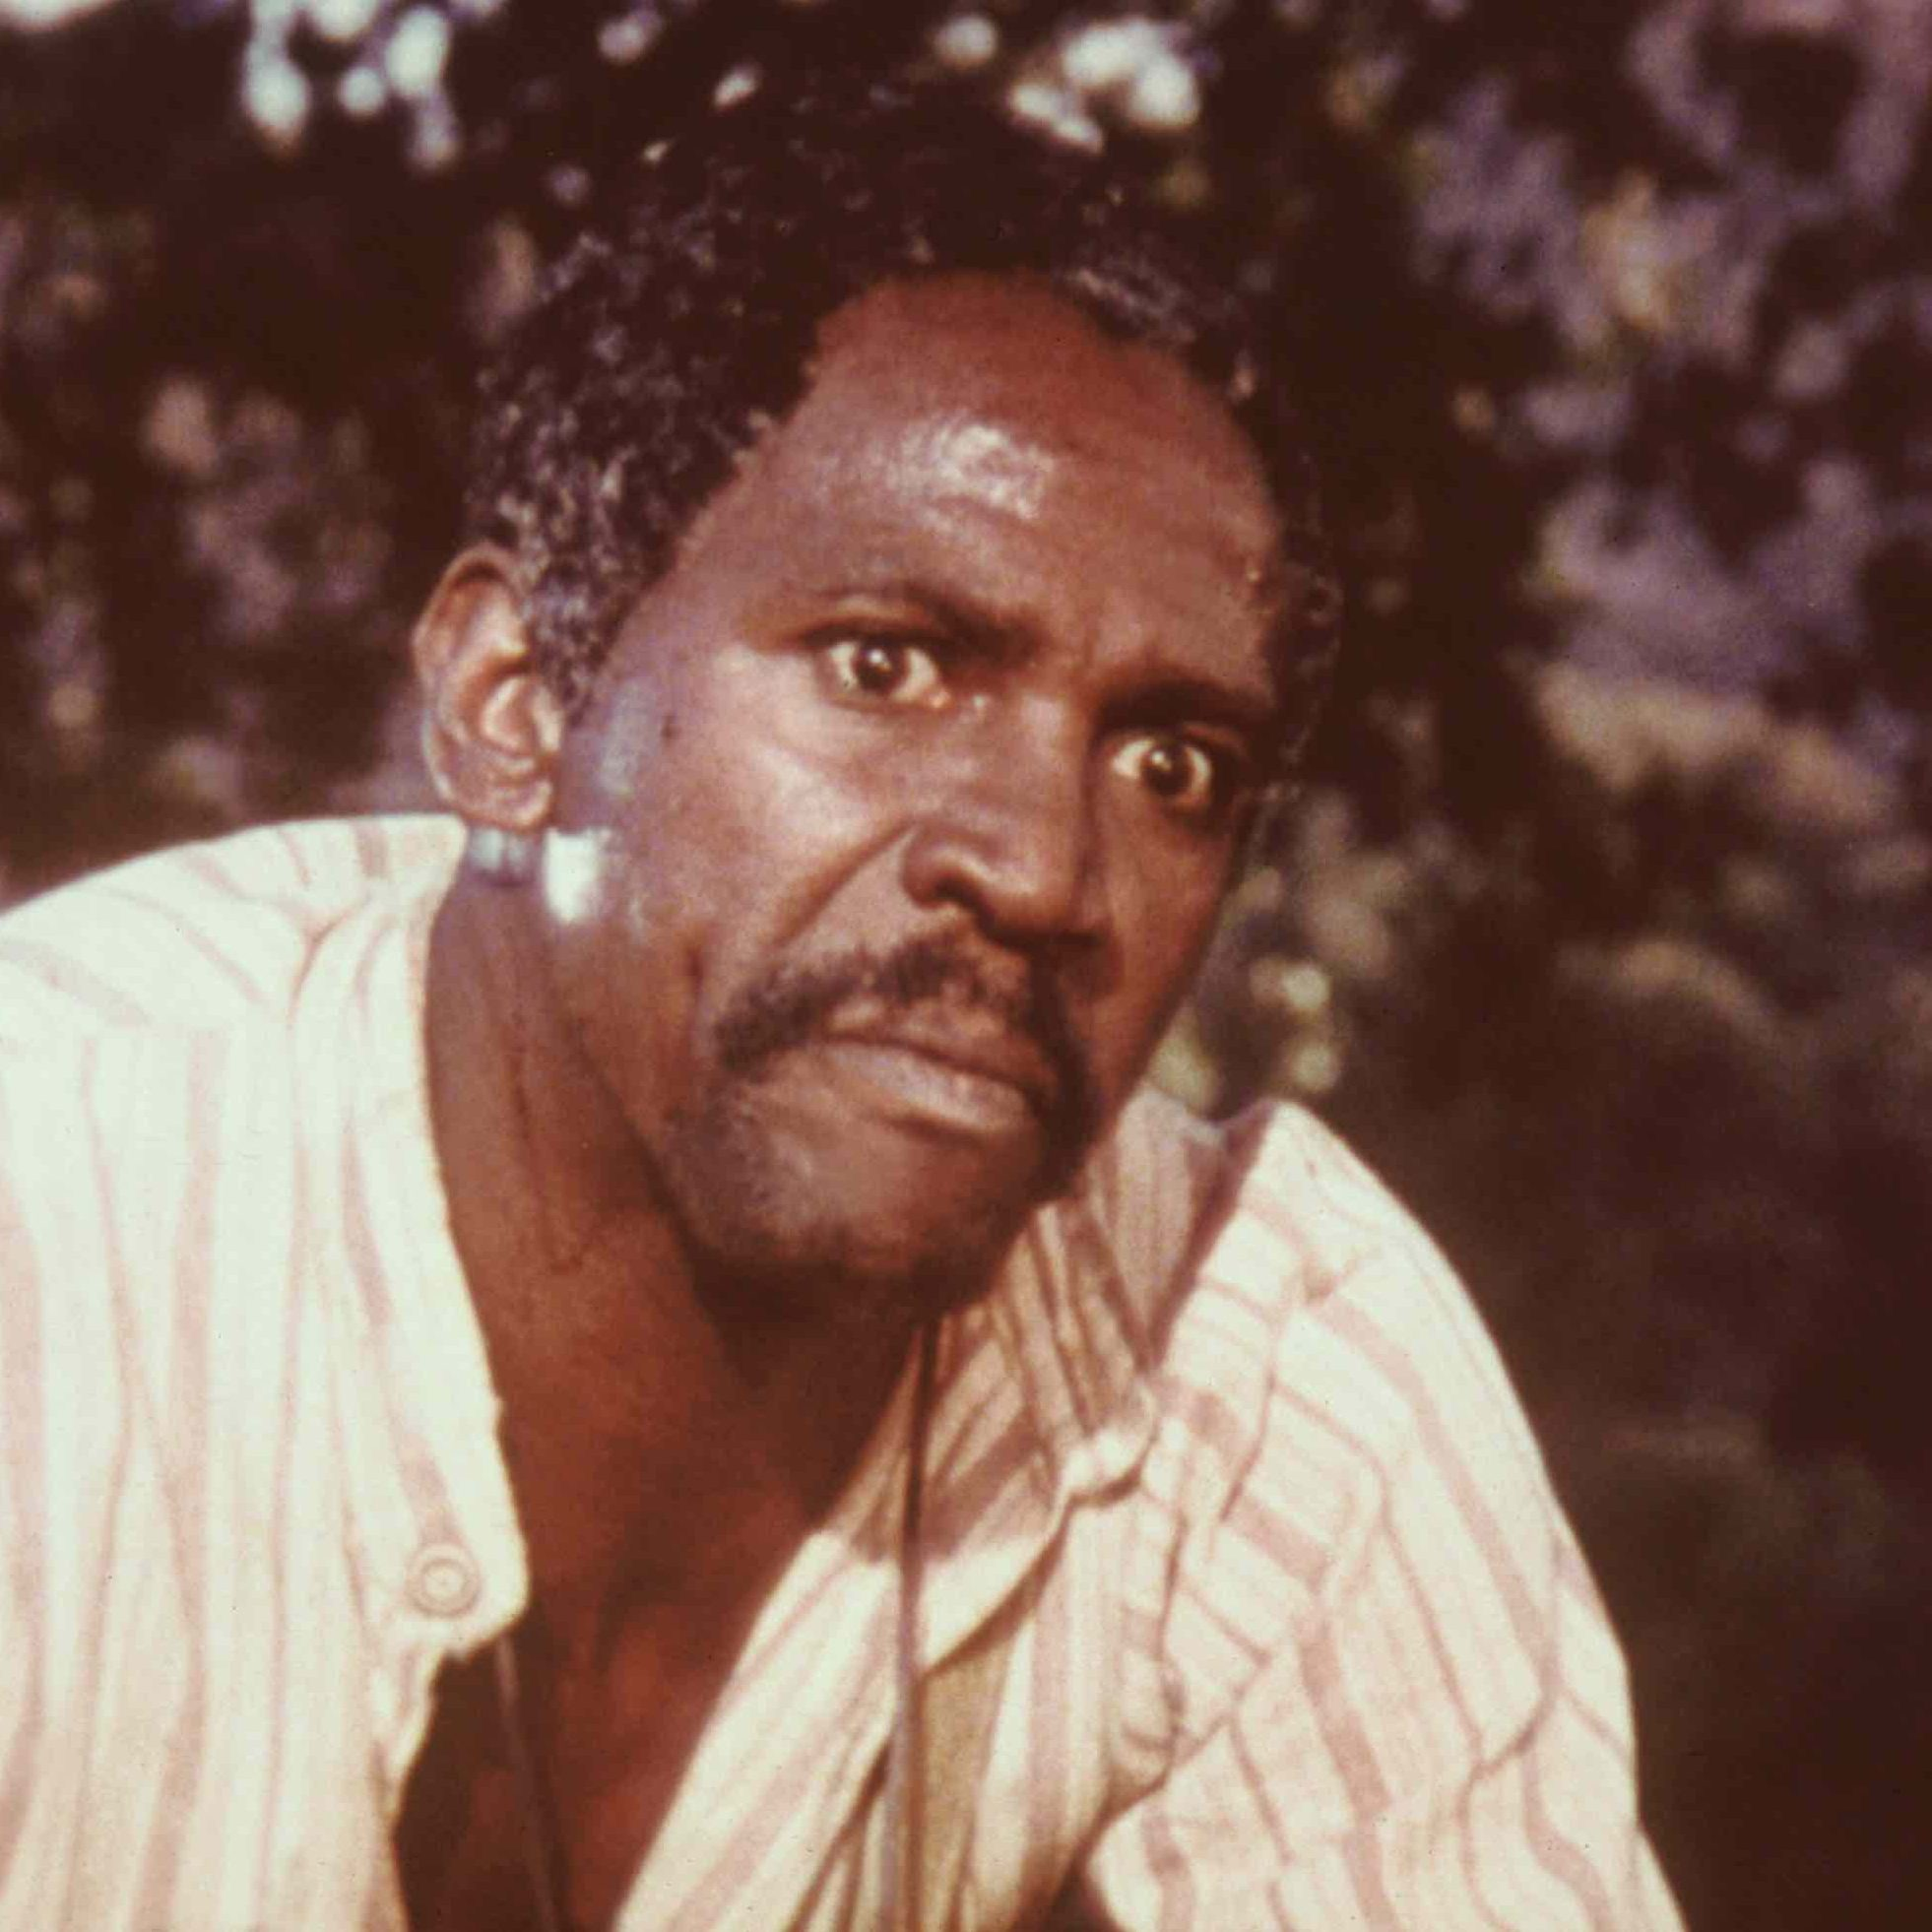 Louis Gossett Jr. e1579689560344 20 Things You Might Not Have Realised About An Officer And A Gentleman